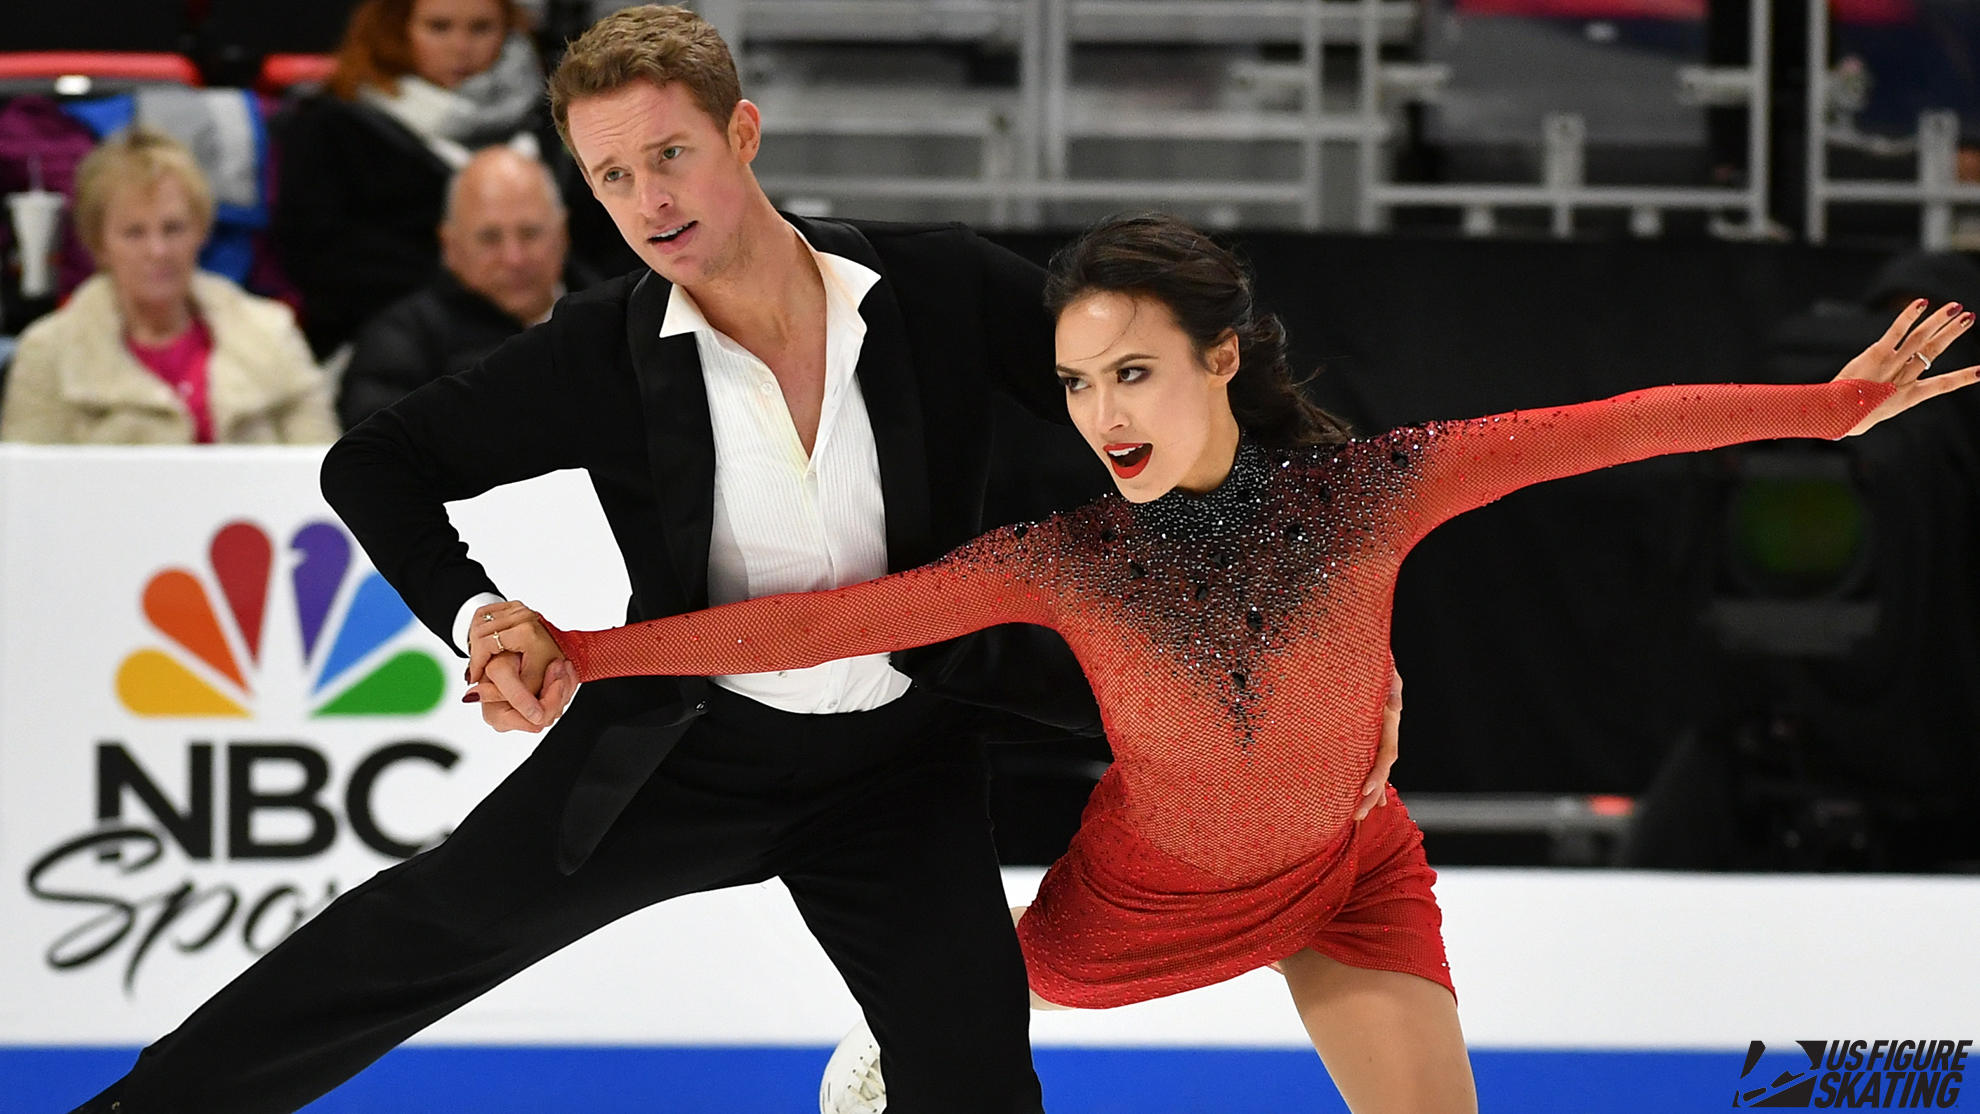 Madison Chock and Evan Bates are Just Getting Started - U.S. Figure Skating  Fan Zone